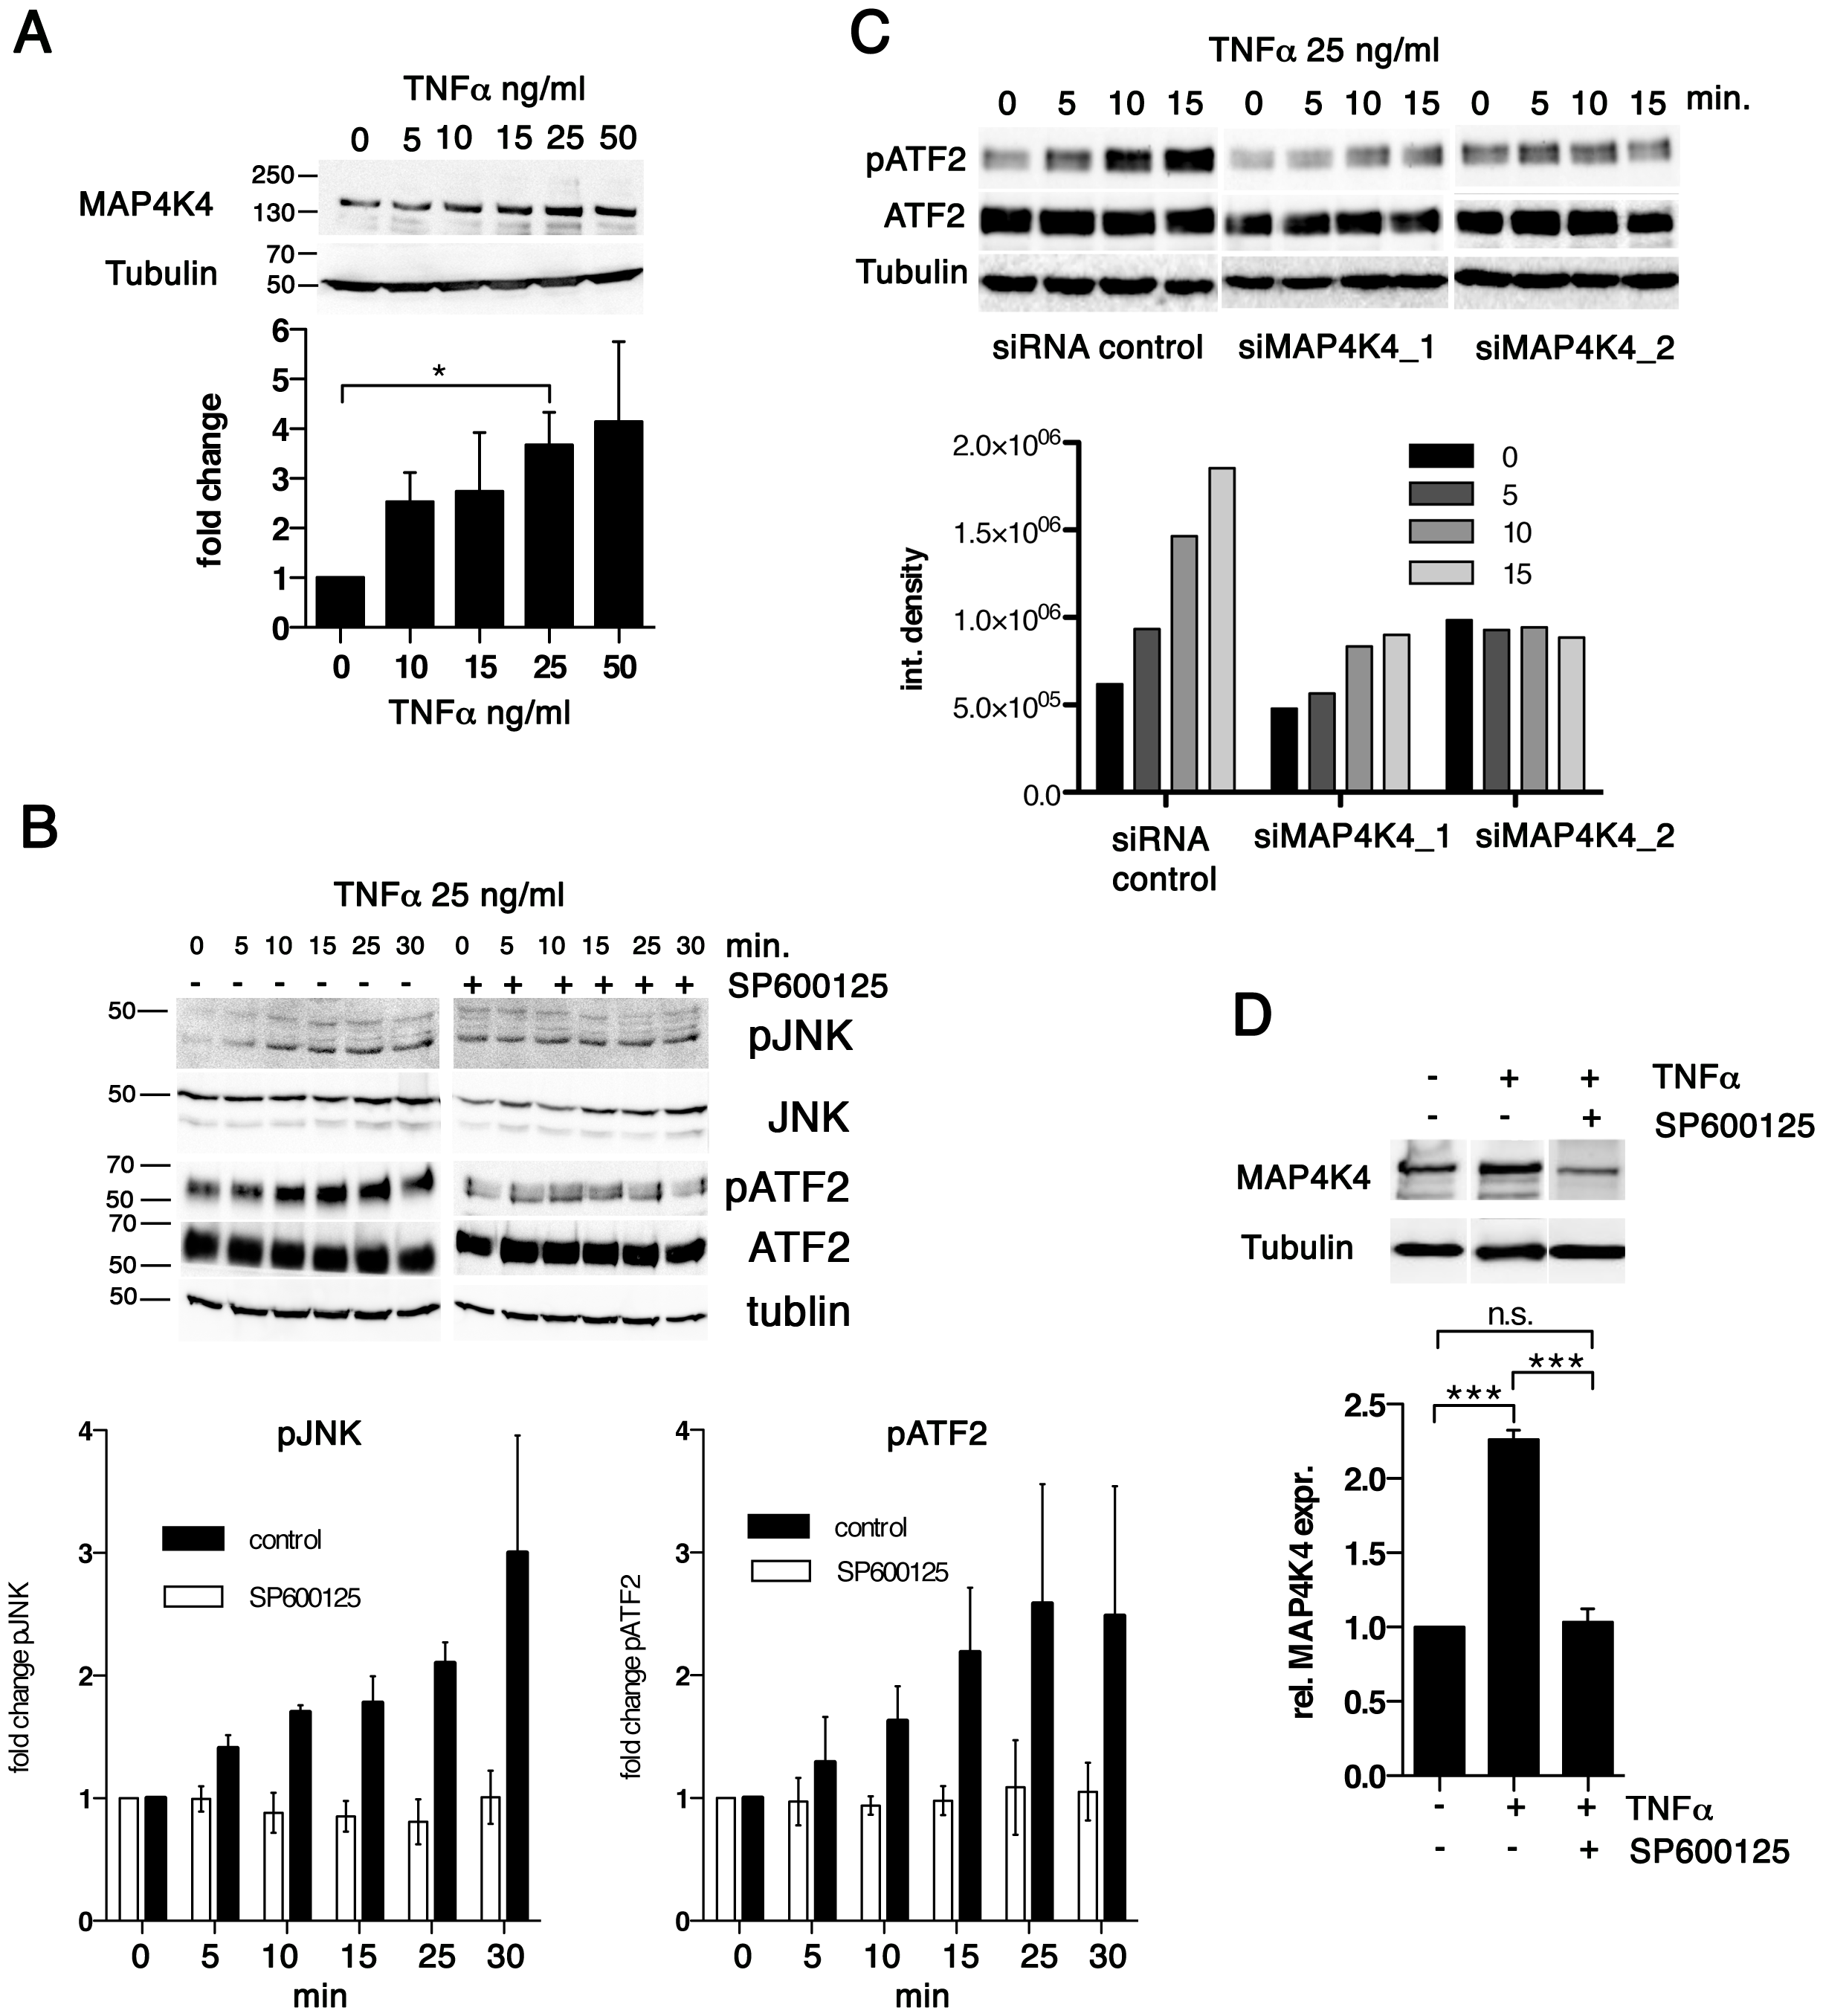 TNFα promotes increased MAP4K4 protein expression through the JNK pathway.